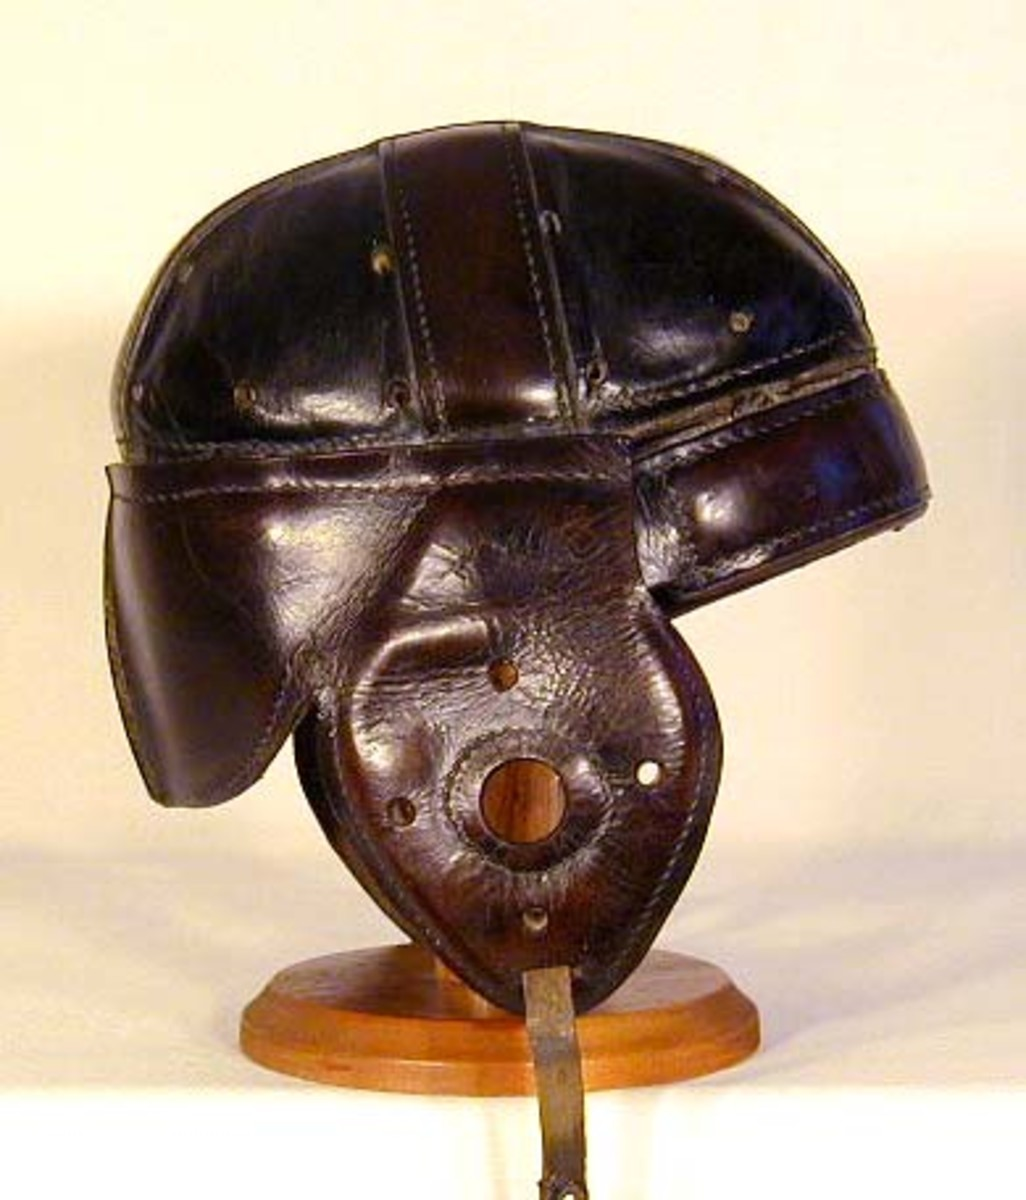 In the 20's the helmets added more padding and strap harnesss inside to reduce impact energy.